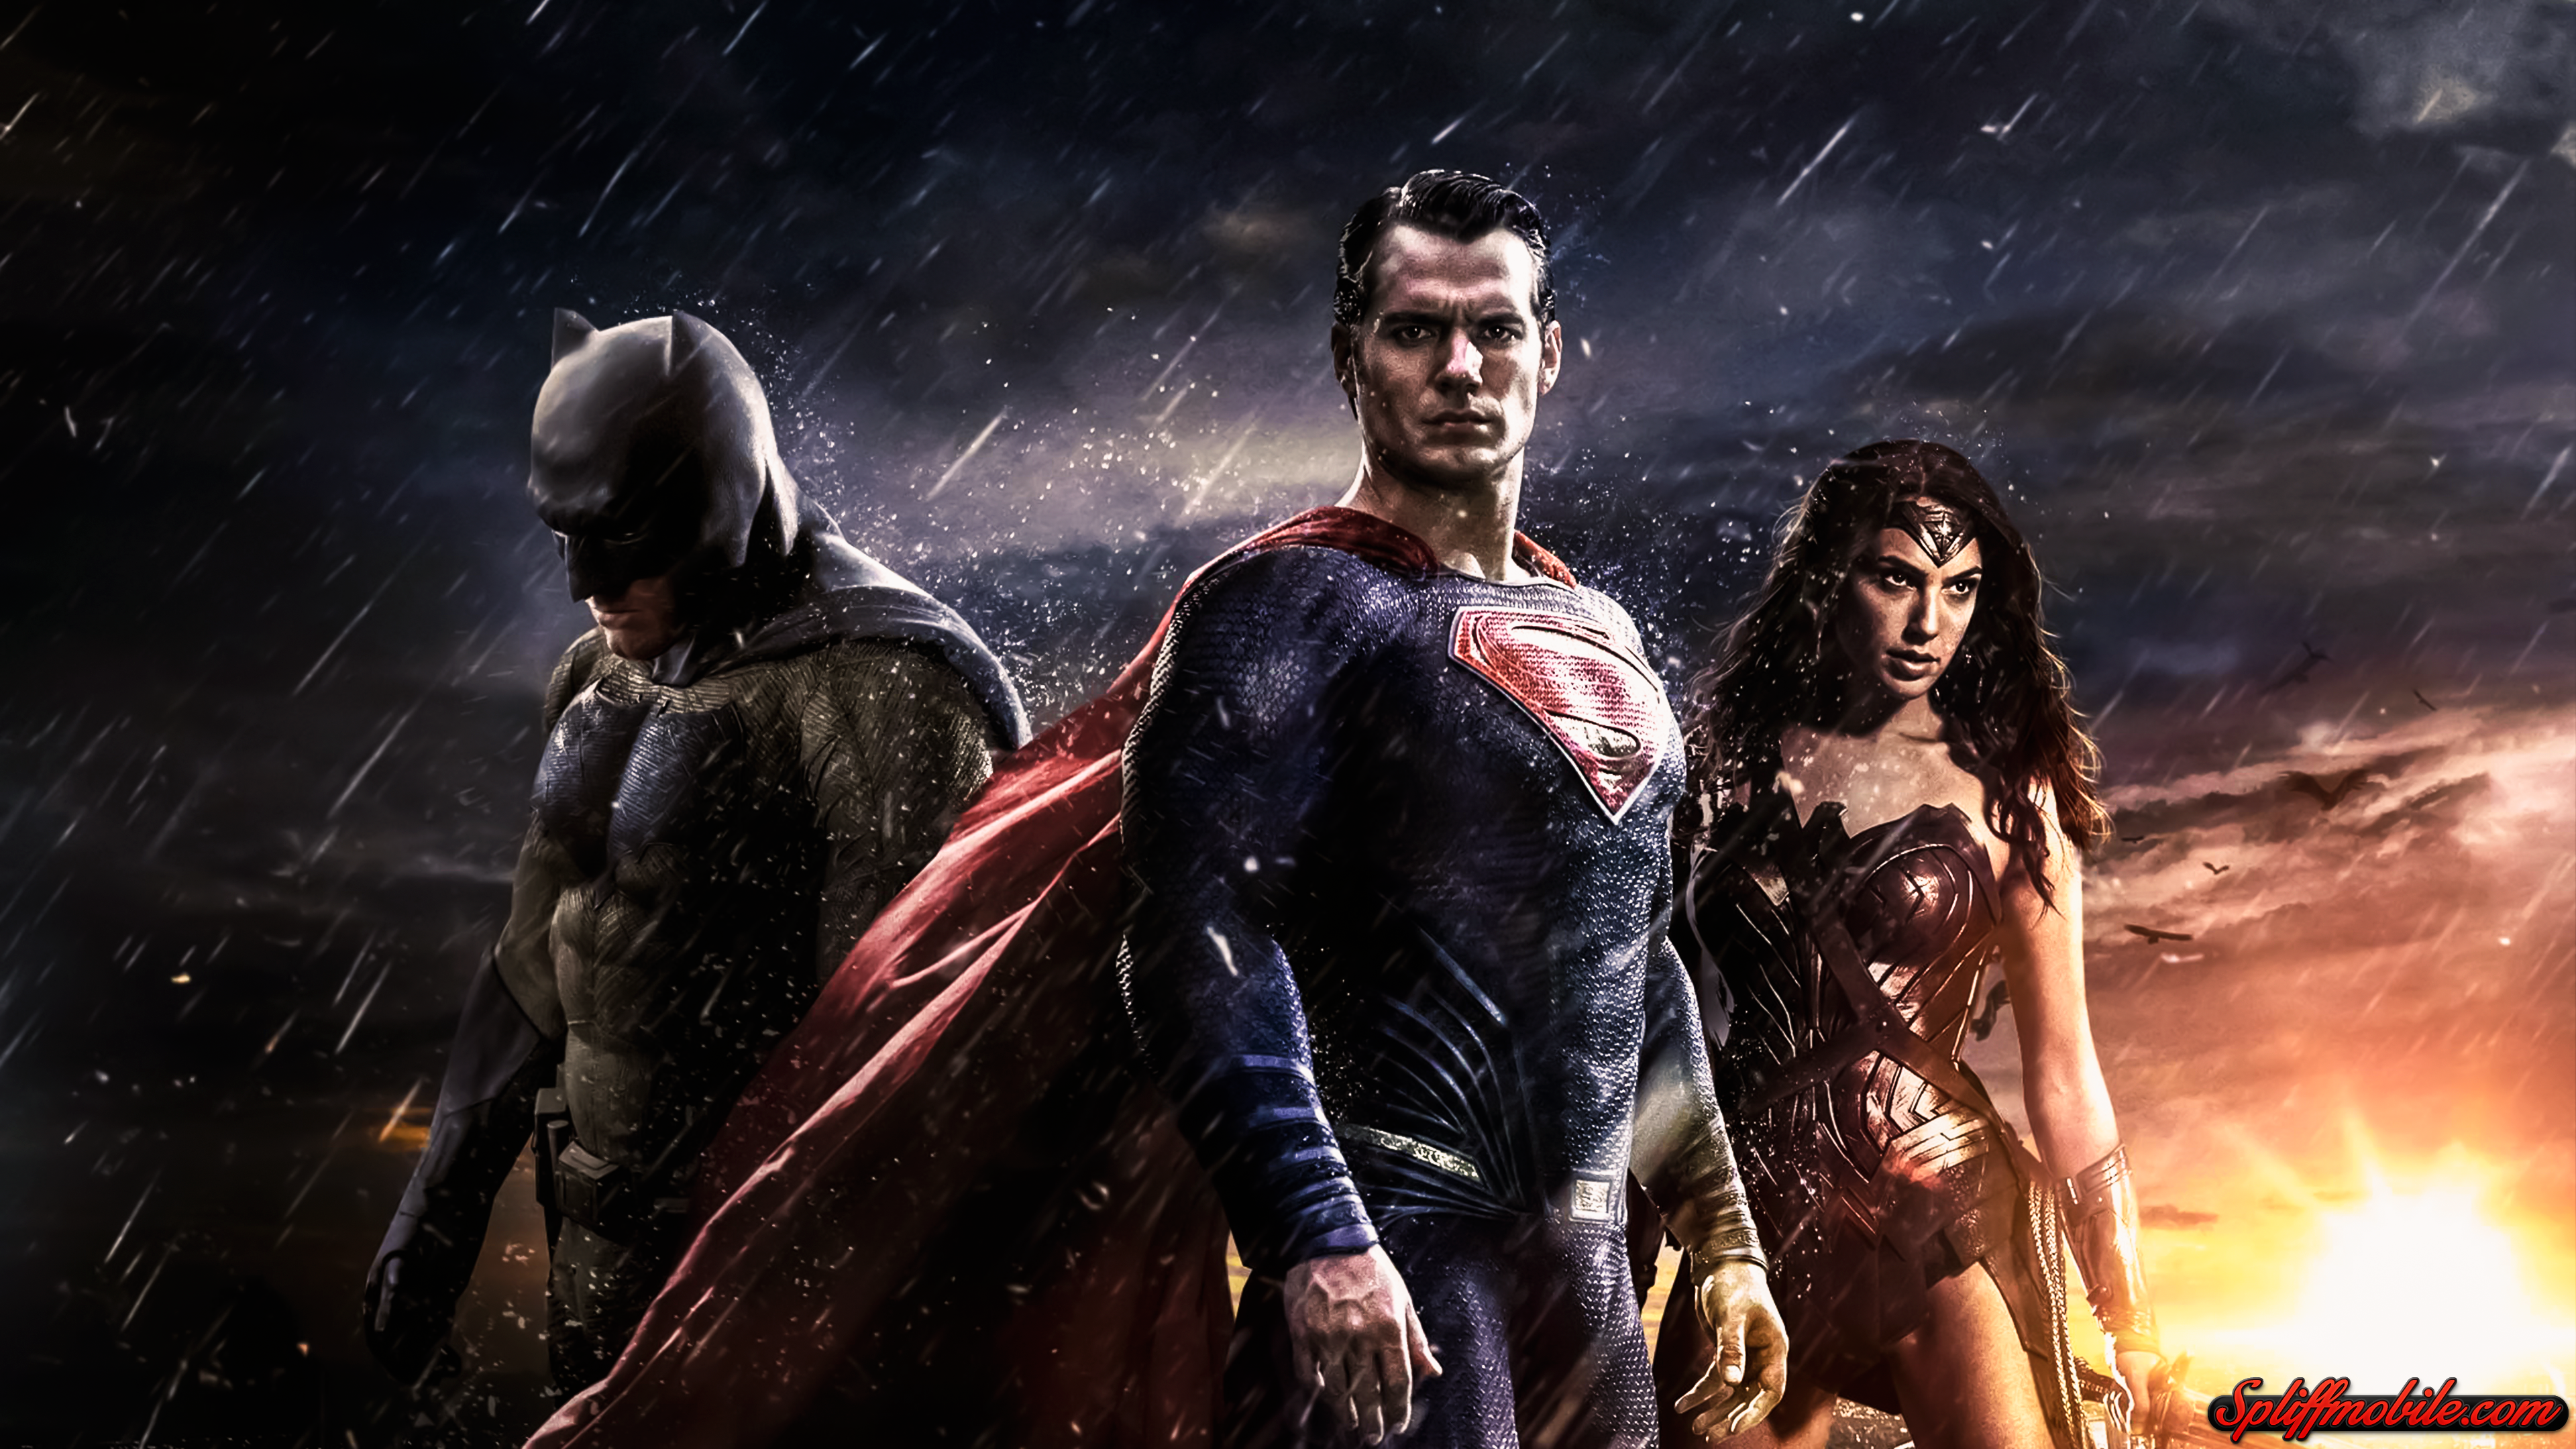 BATMAN VS SUPERMAN WALLPAPERS FREE Wallpapers Background images 3840x2160